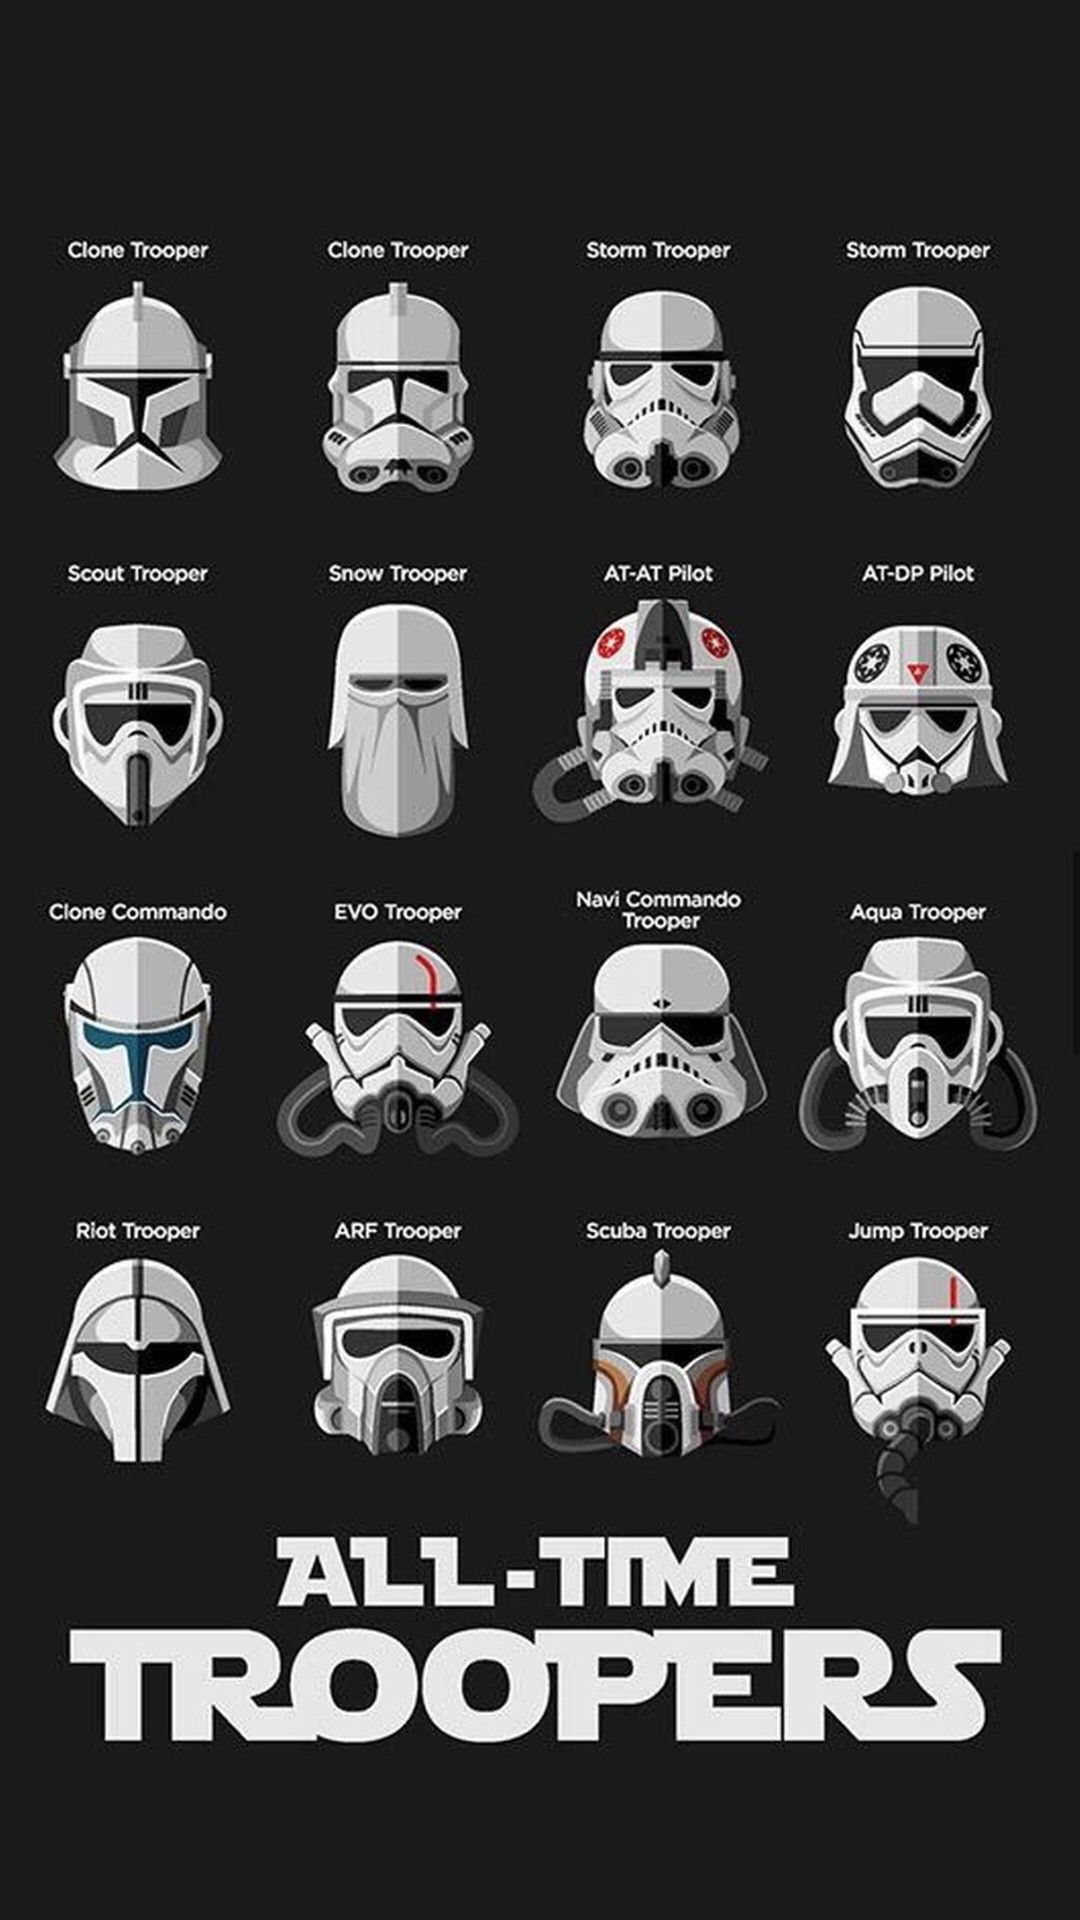 Star Wars Iphone Wallpaper Hd 84 Images Star Wars Helmet Star Wars Trooper Star Wars Clone Wars